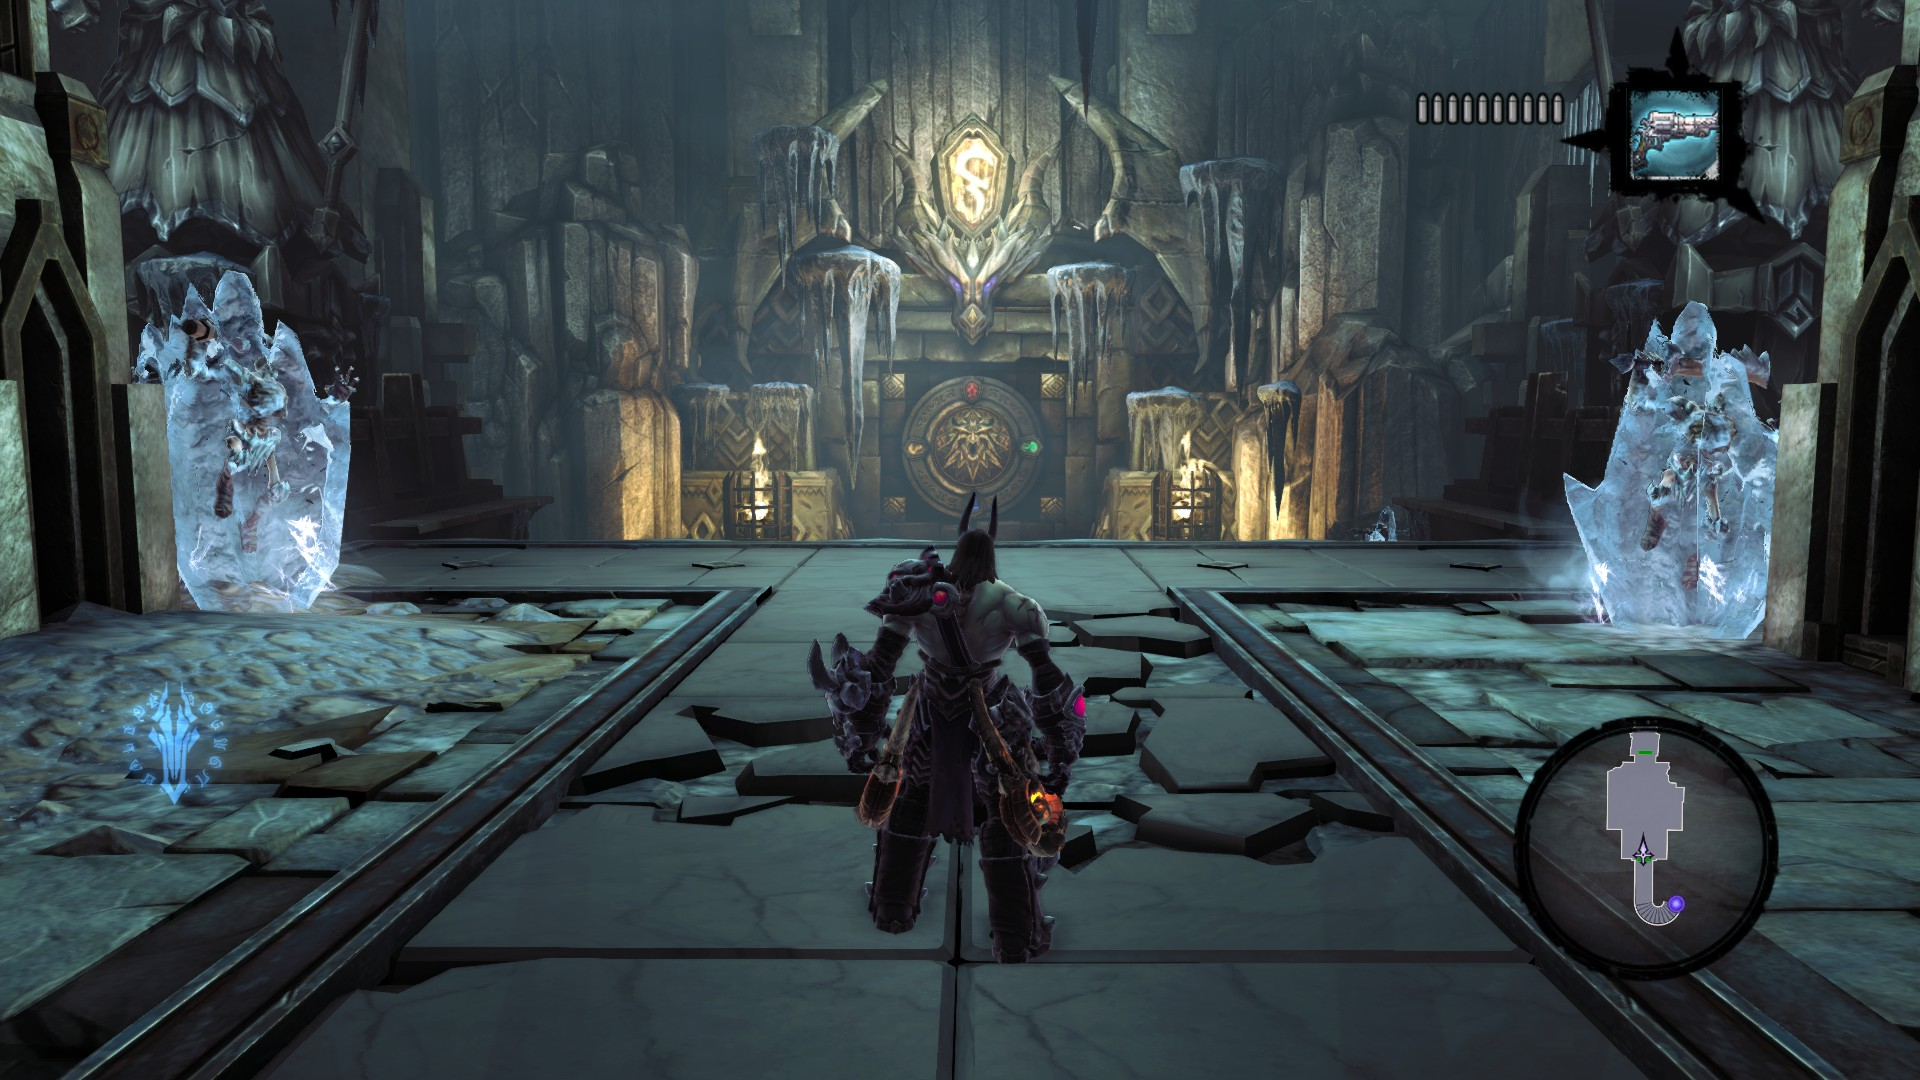 darksiders 2 book of the dead chapter 3 locations